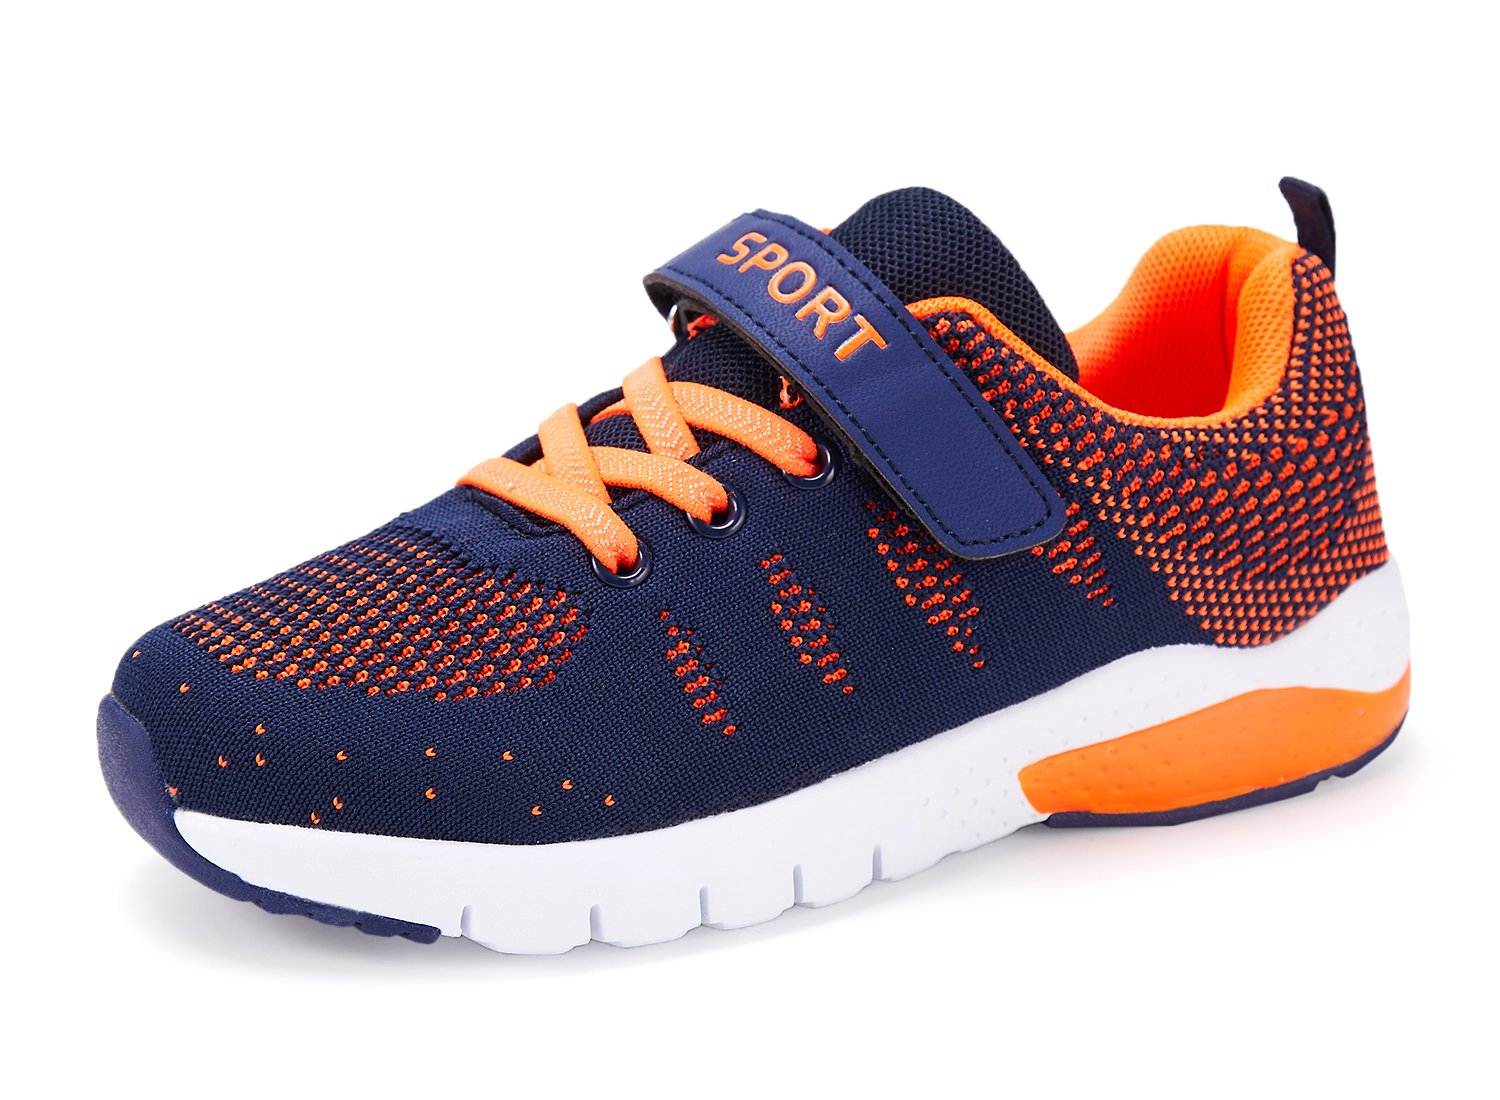 Caitin Kids Running Tennis Shoes Lightweight Casual Walking Sneakers for Boys and Girls, 1#orange, 13 M US Little Kid